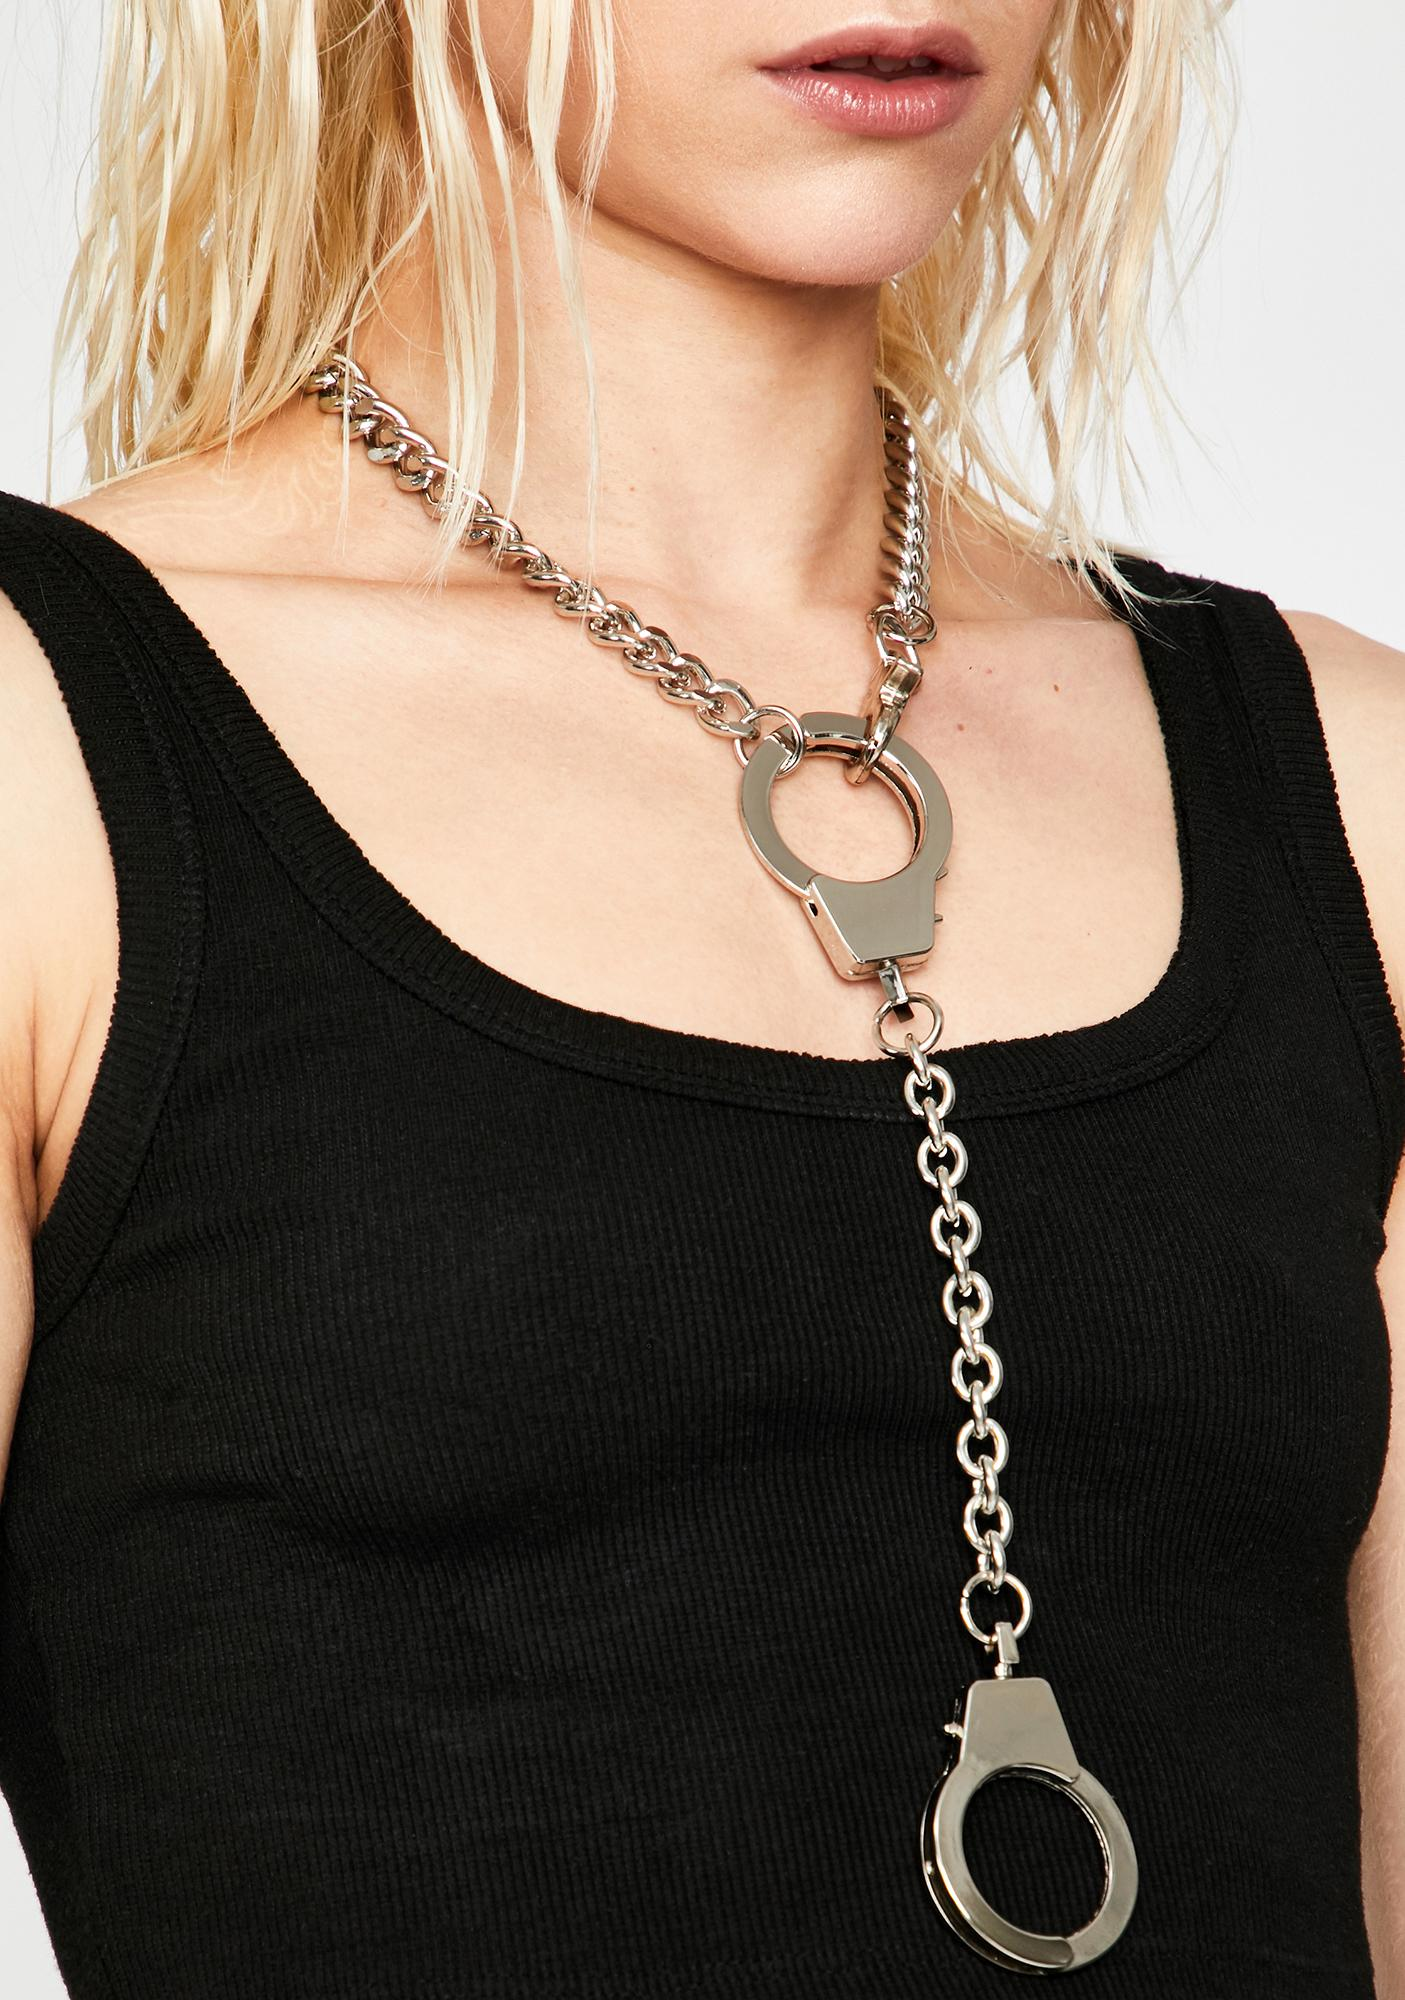 Used Against U Chain Necklace